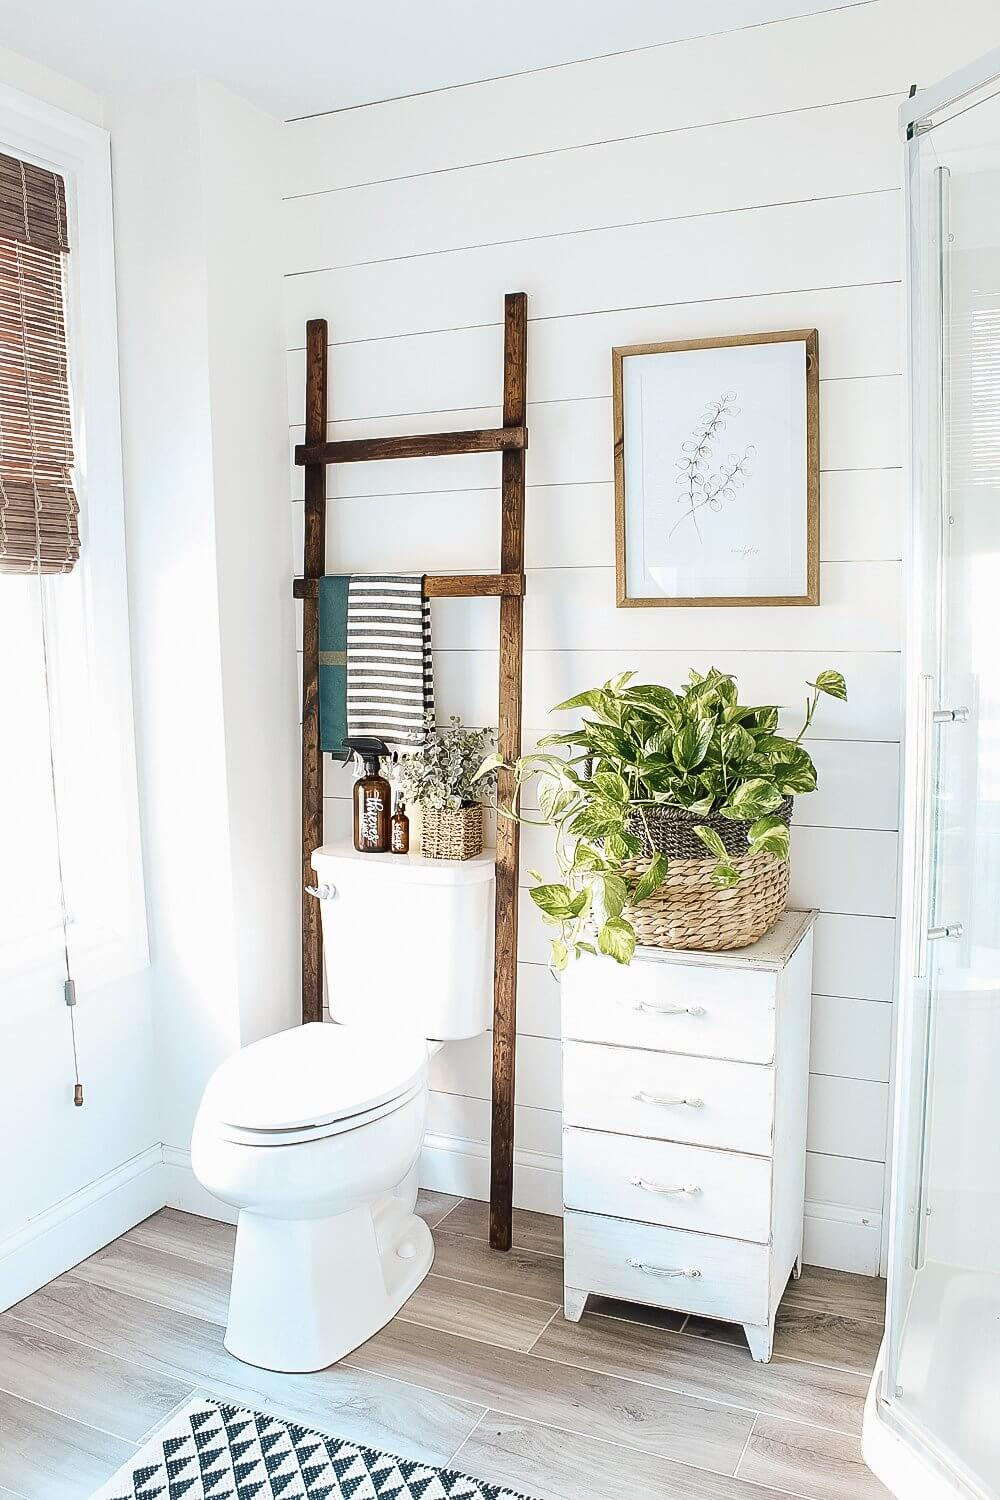 Easy Rustic Bathroom Ladder DIY Project